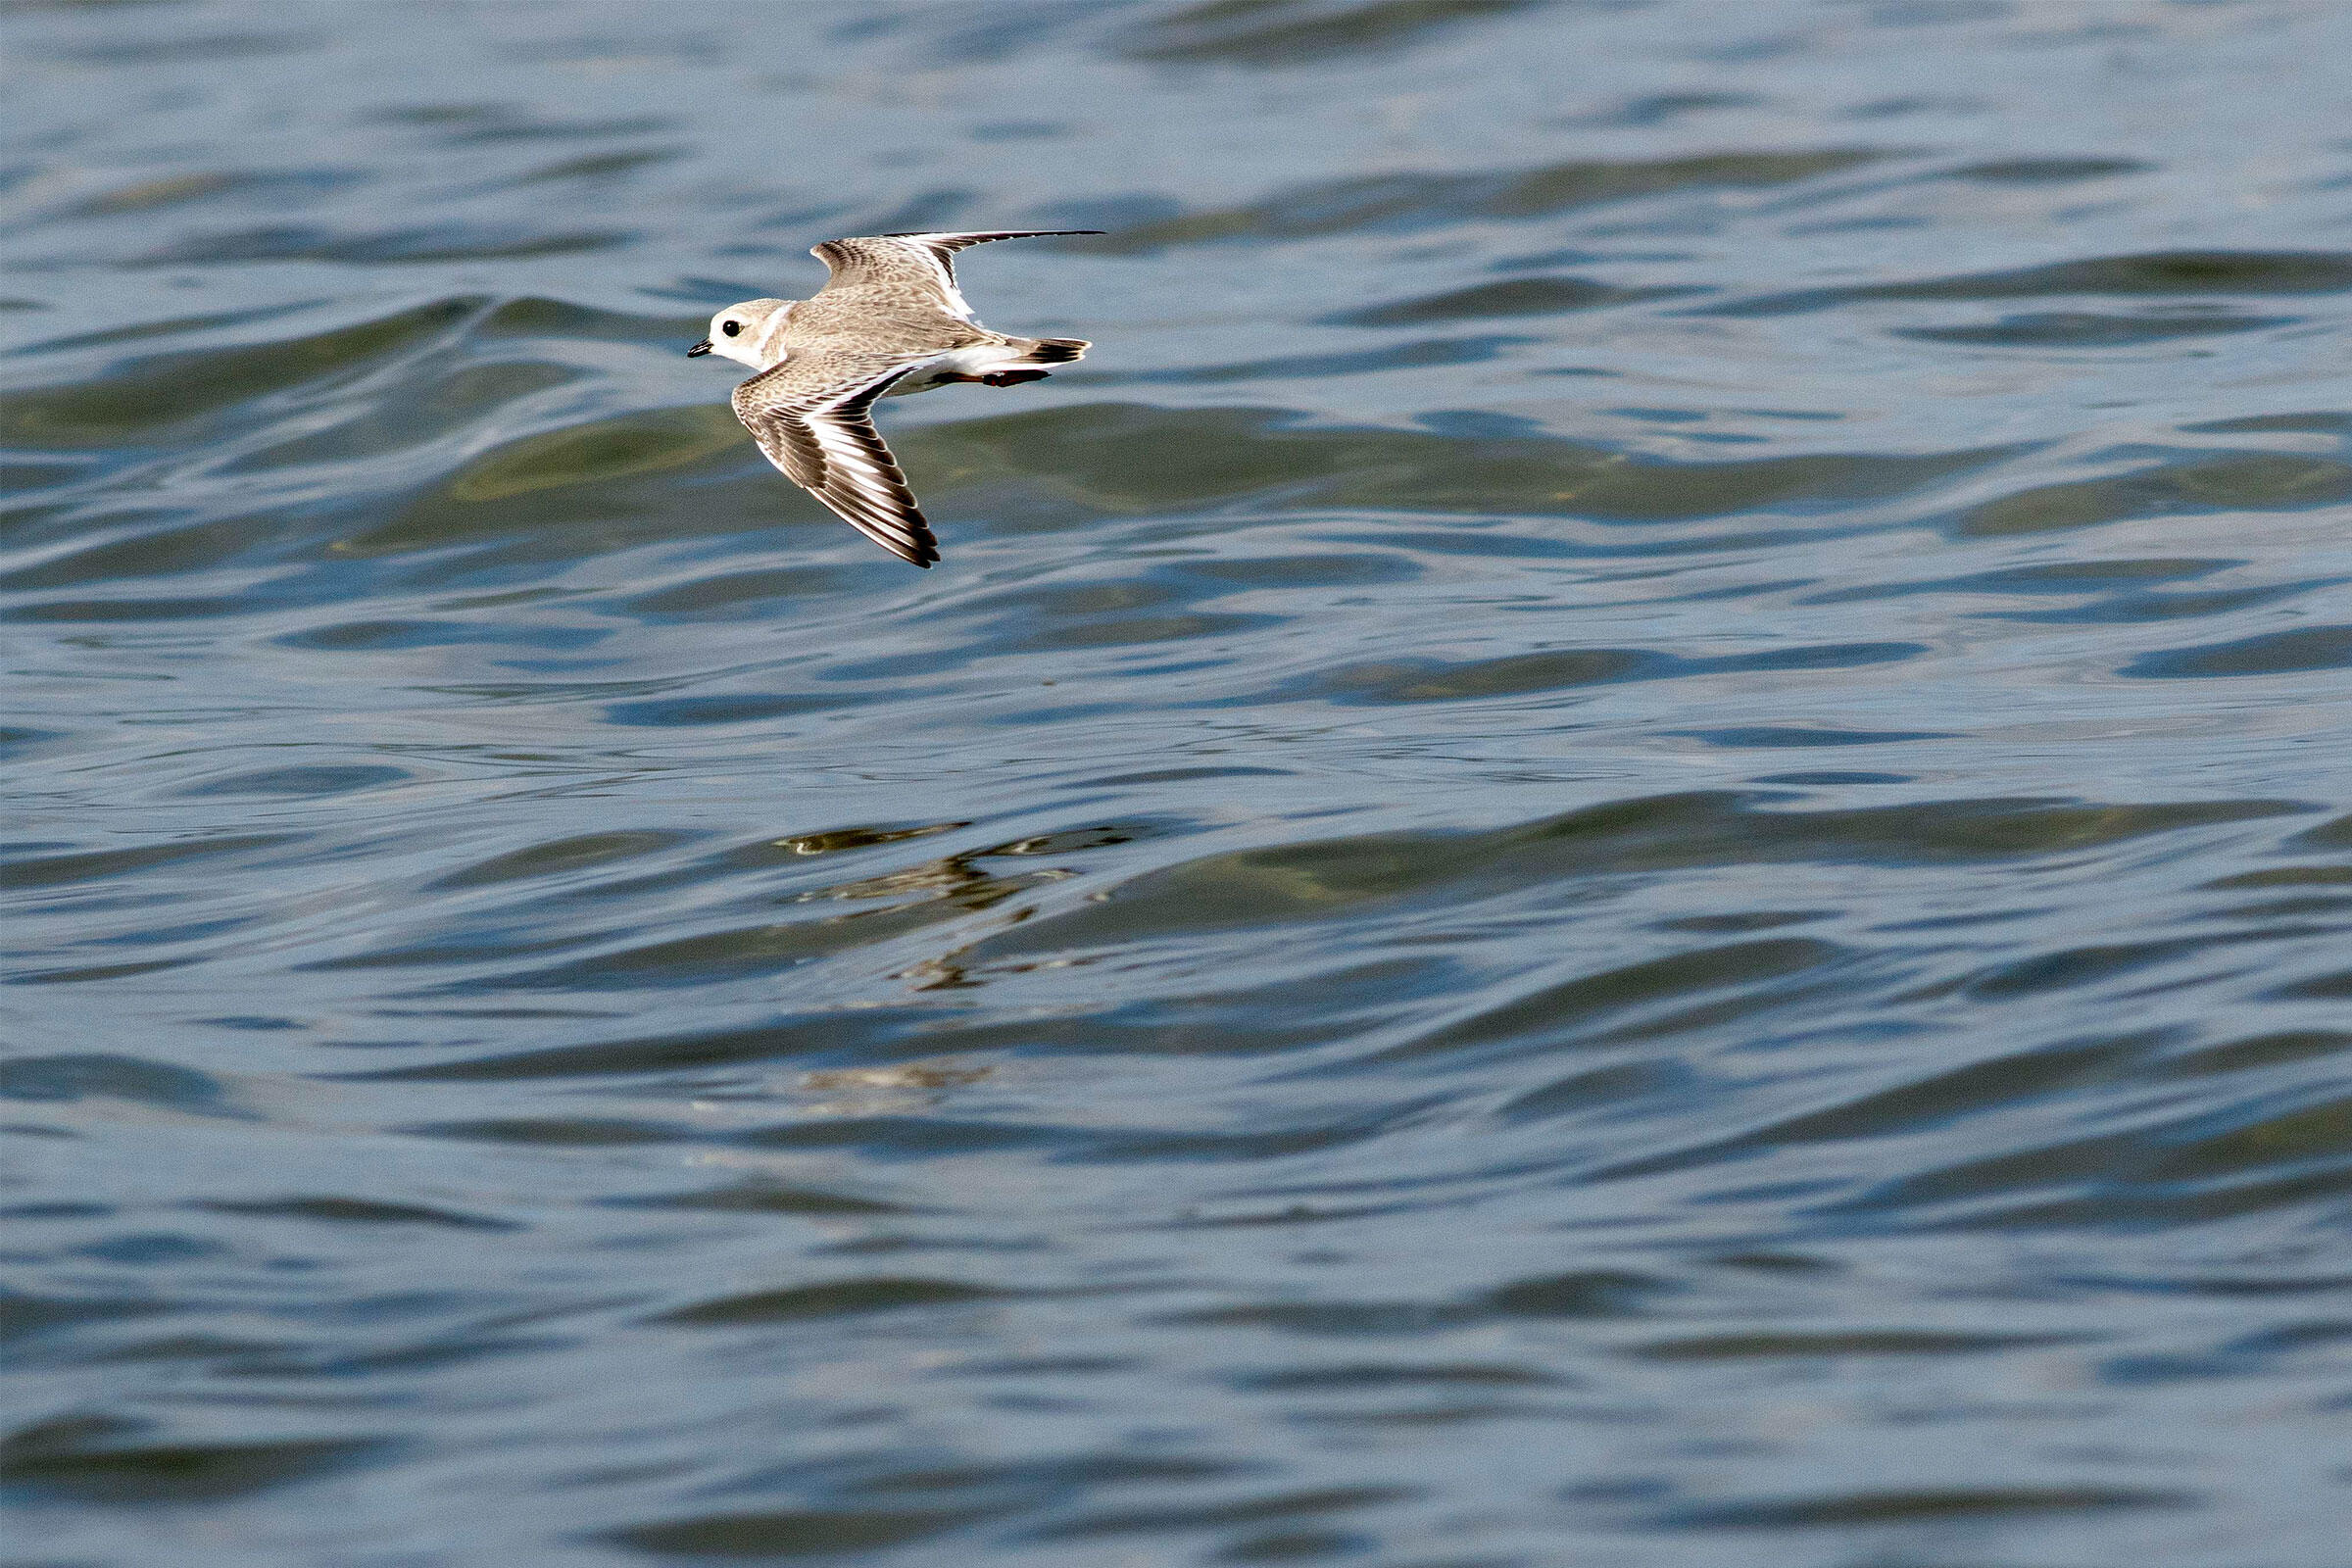 Once a Piping Plover can fly 50 meters on its own, conservationists declare it successfully fledged. Mark Peck